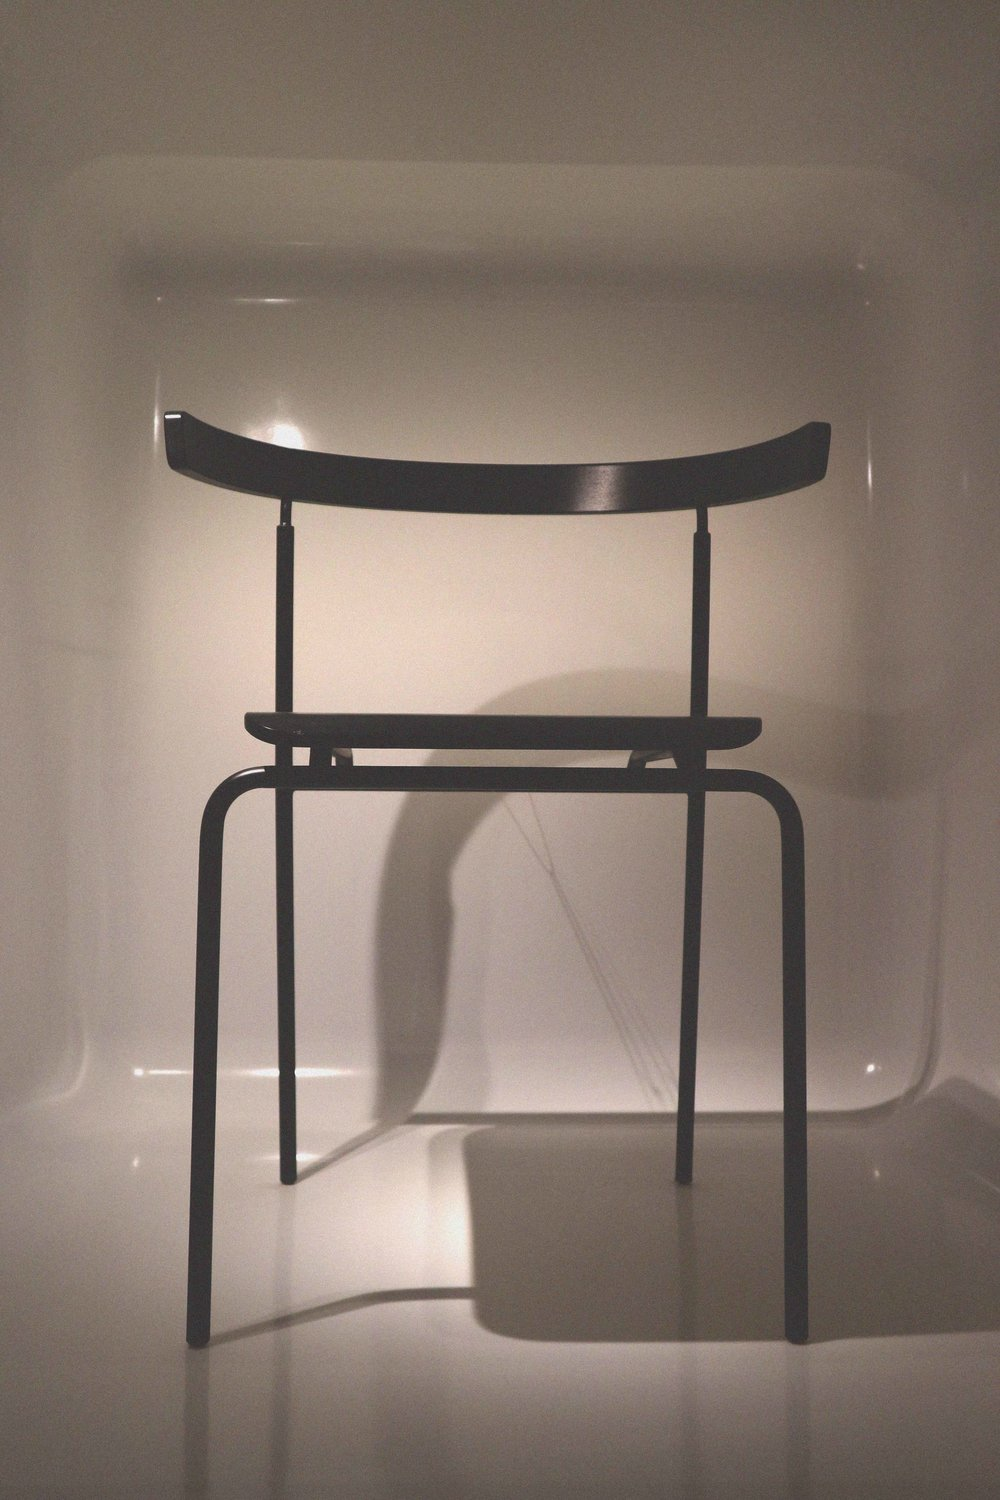 This one is pretty sleek and slender, the work of designer Jorgen Gammelgaard, a simple black shape made from lines, named Chair no.10.